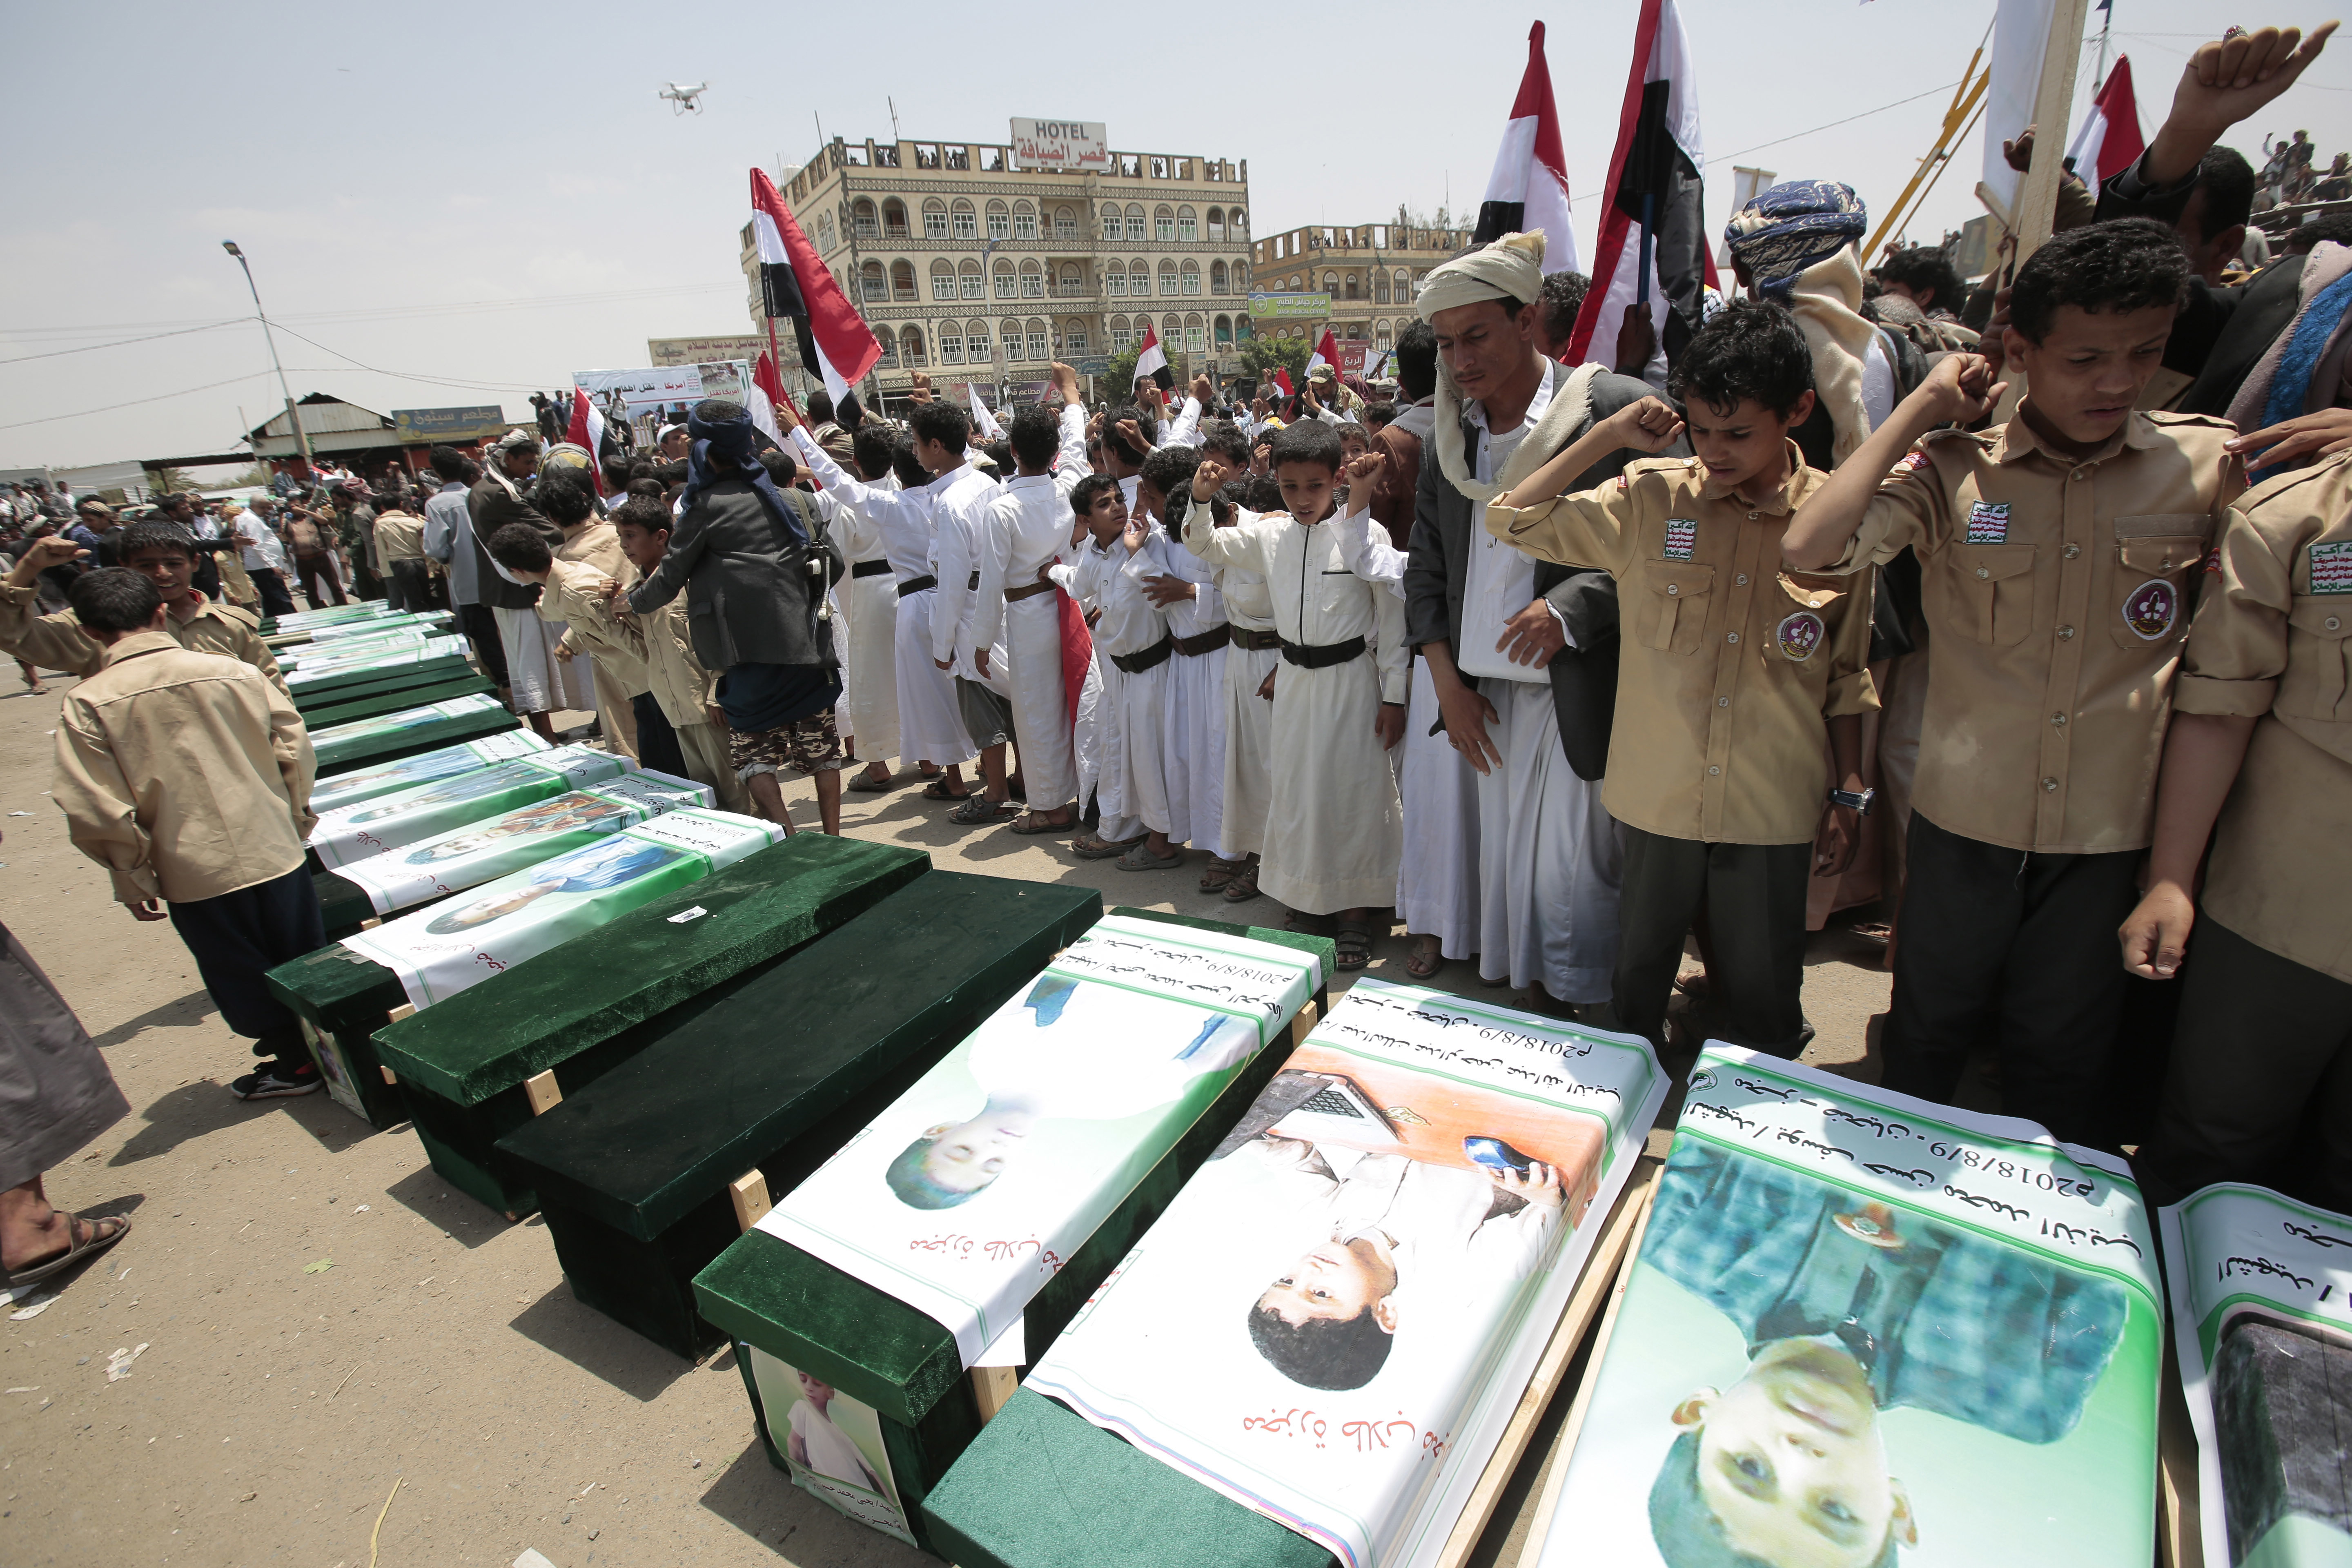 Yemeni people attend the funeral of victims of a Saudi-led airstrike, in Saada, Yemen, Aug. 13, 2018.